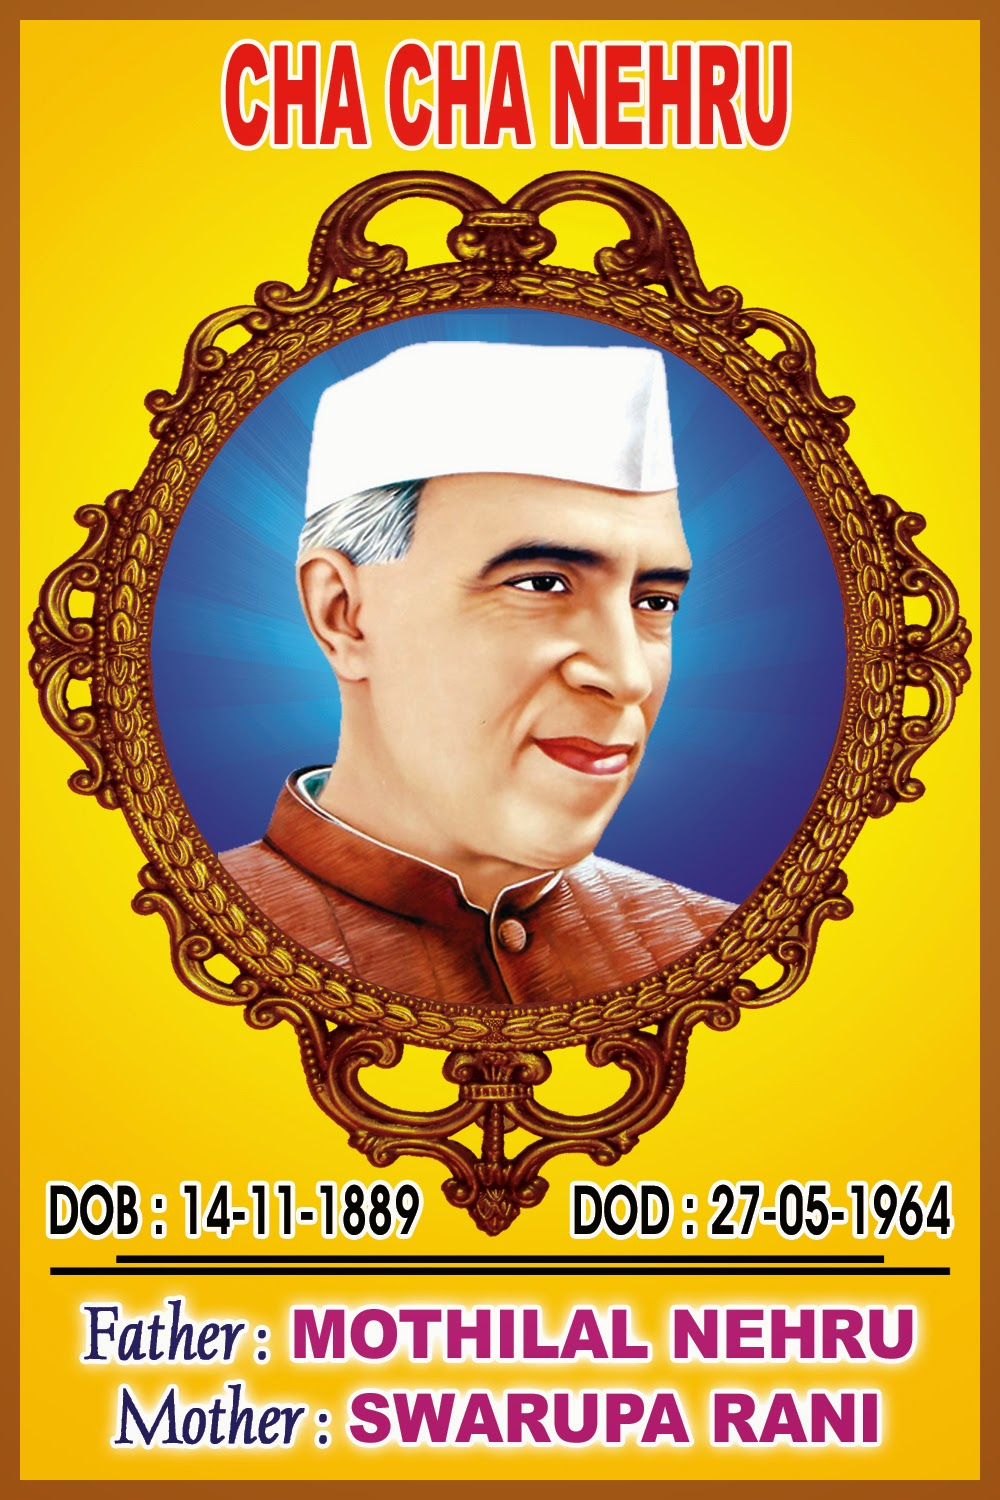 cha-cha-nehru-freedom-fighter-image-with-names-naveengfx.com